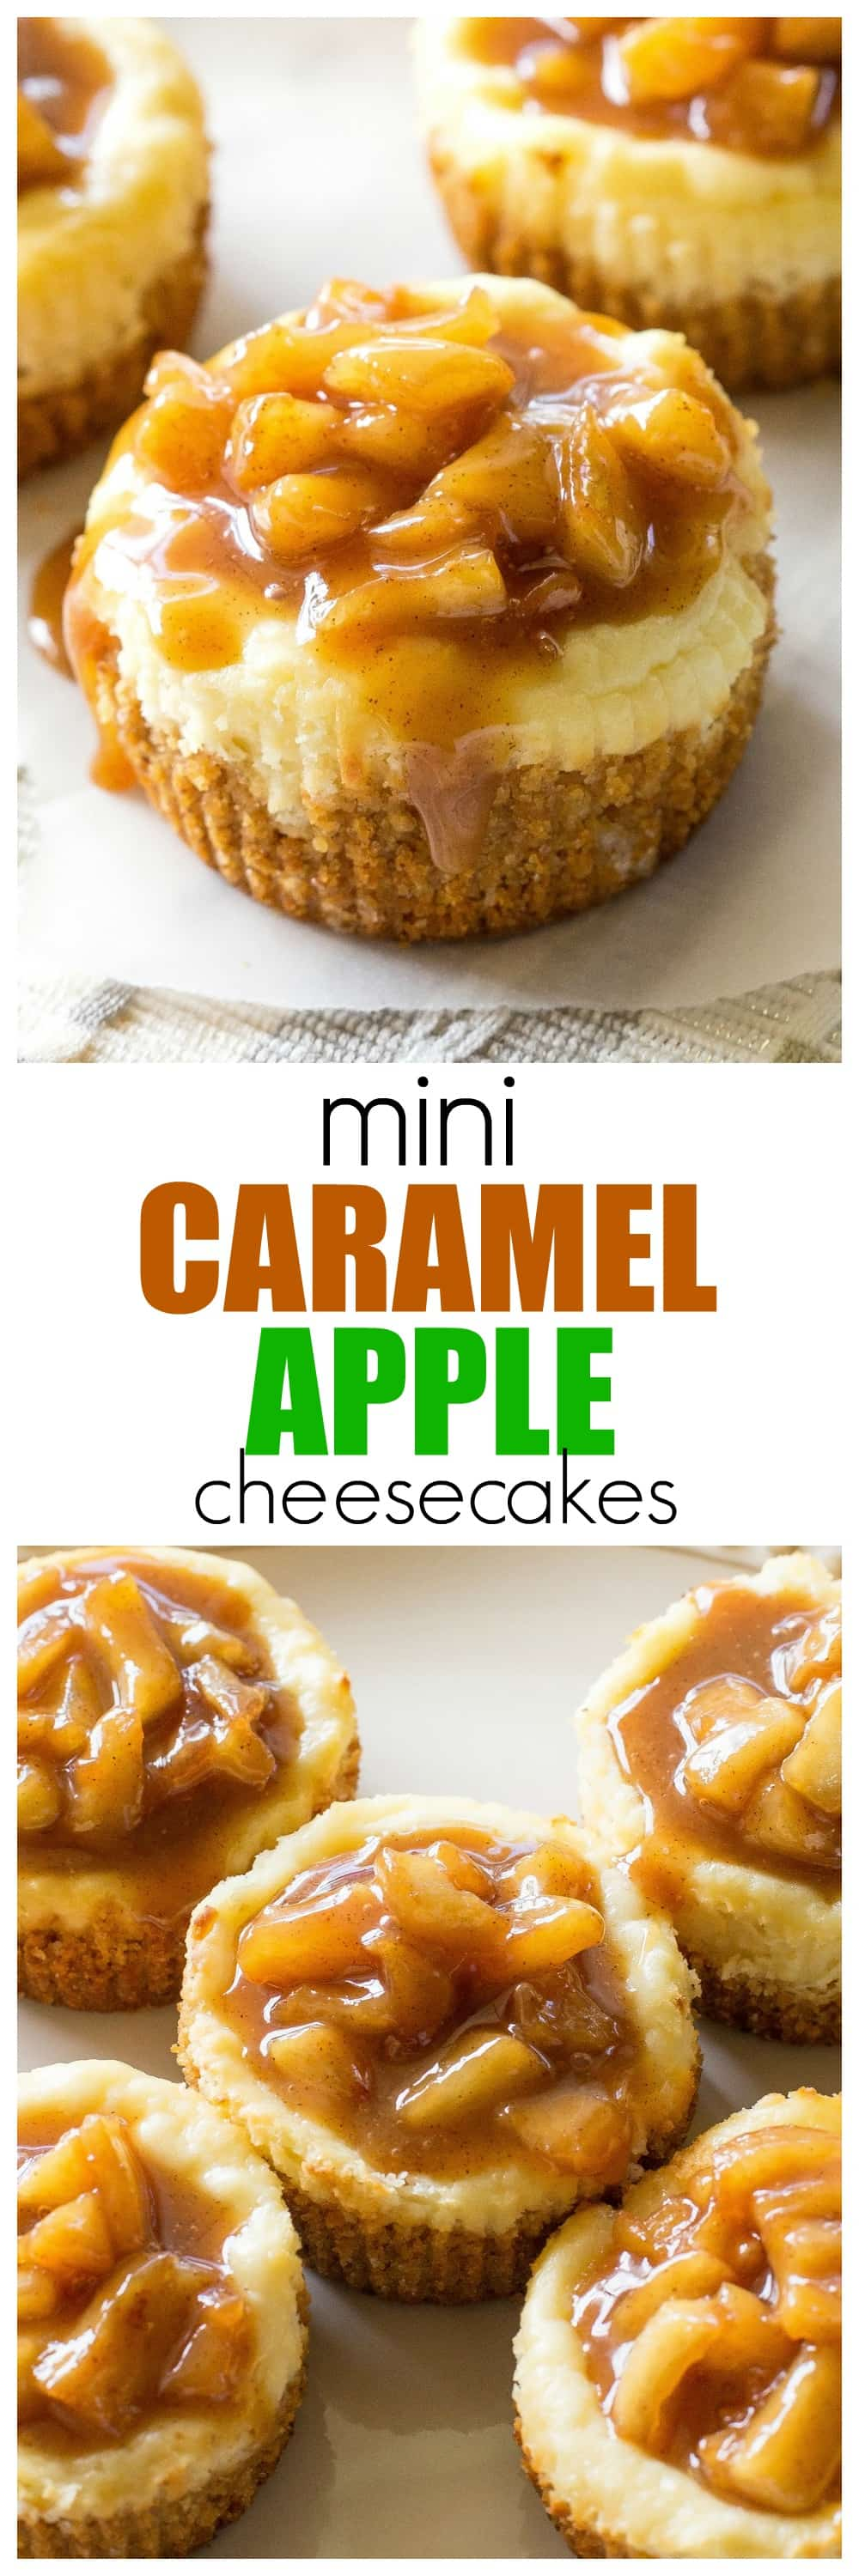 Mini Caramel Apple Cheesecakes - so easy and individually portioned! #caramel #apple #cheesecakes #dessert #recipe